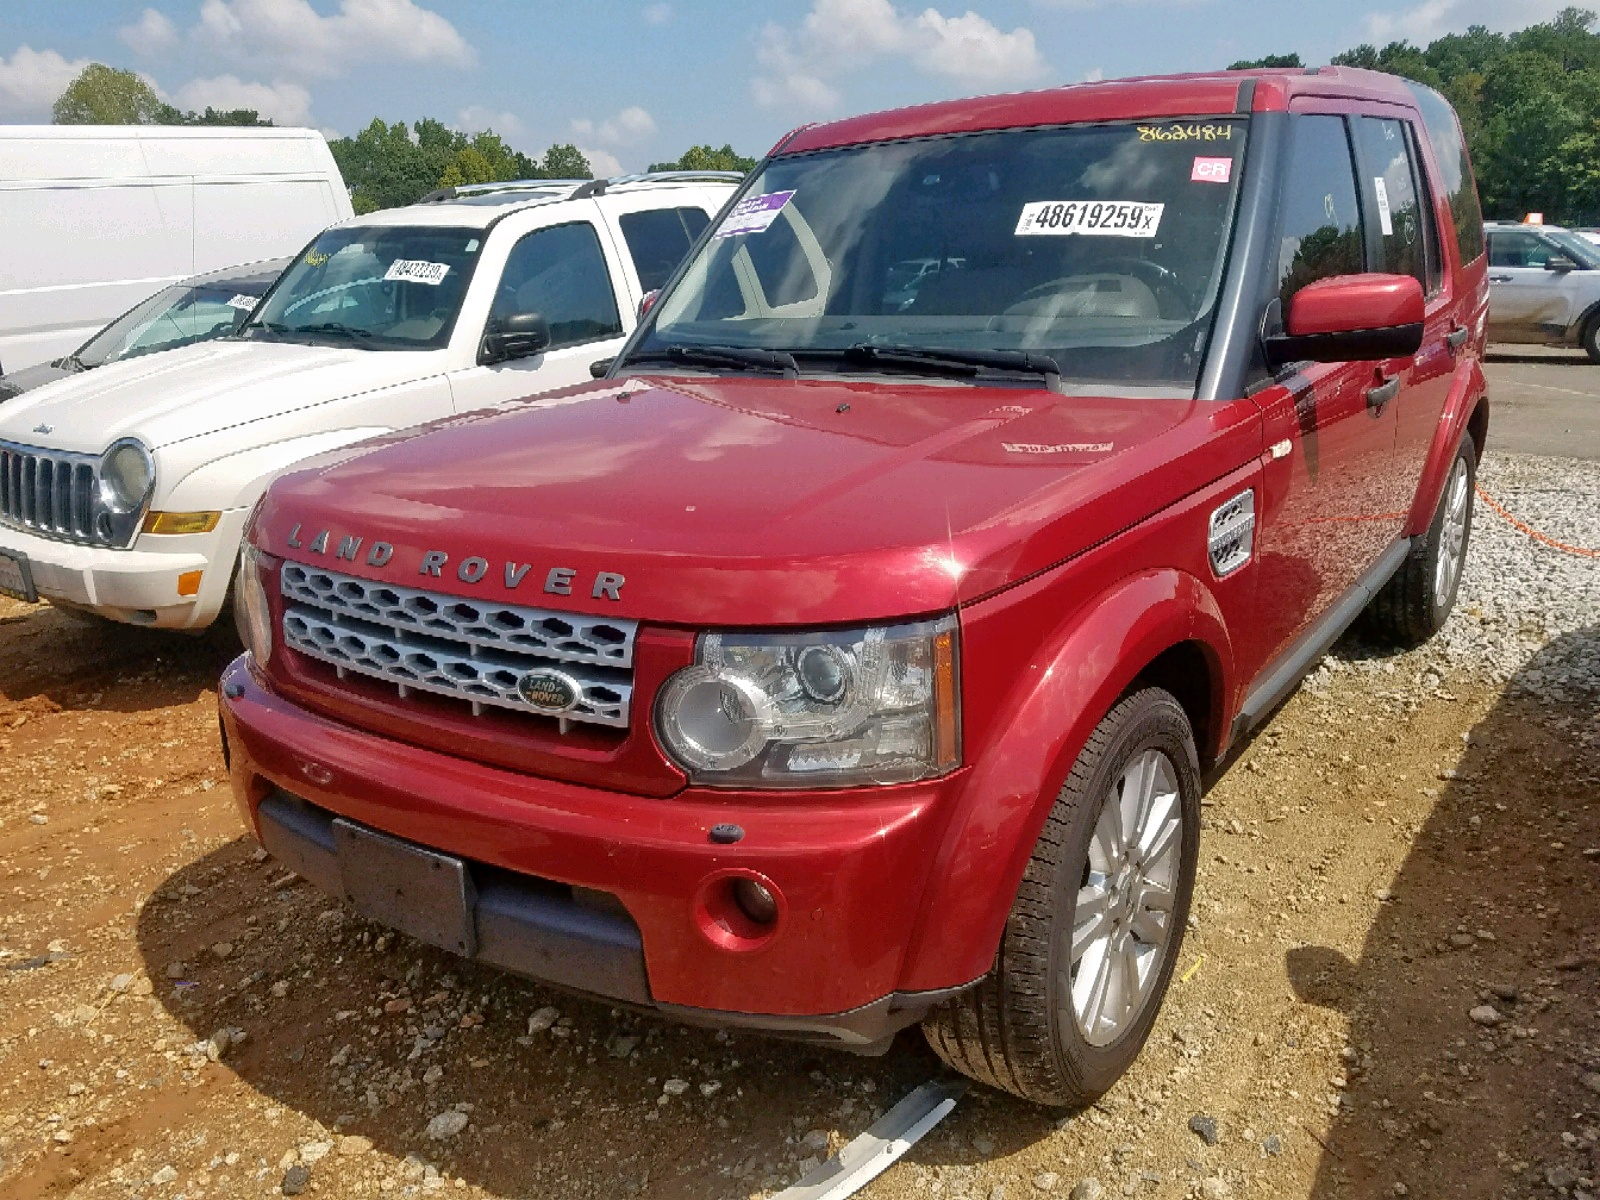 SALAG2D46CA642089 - 2012 Land Rover Lr4 Hse 5.0L Right View